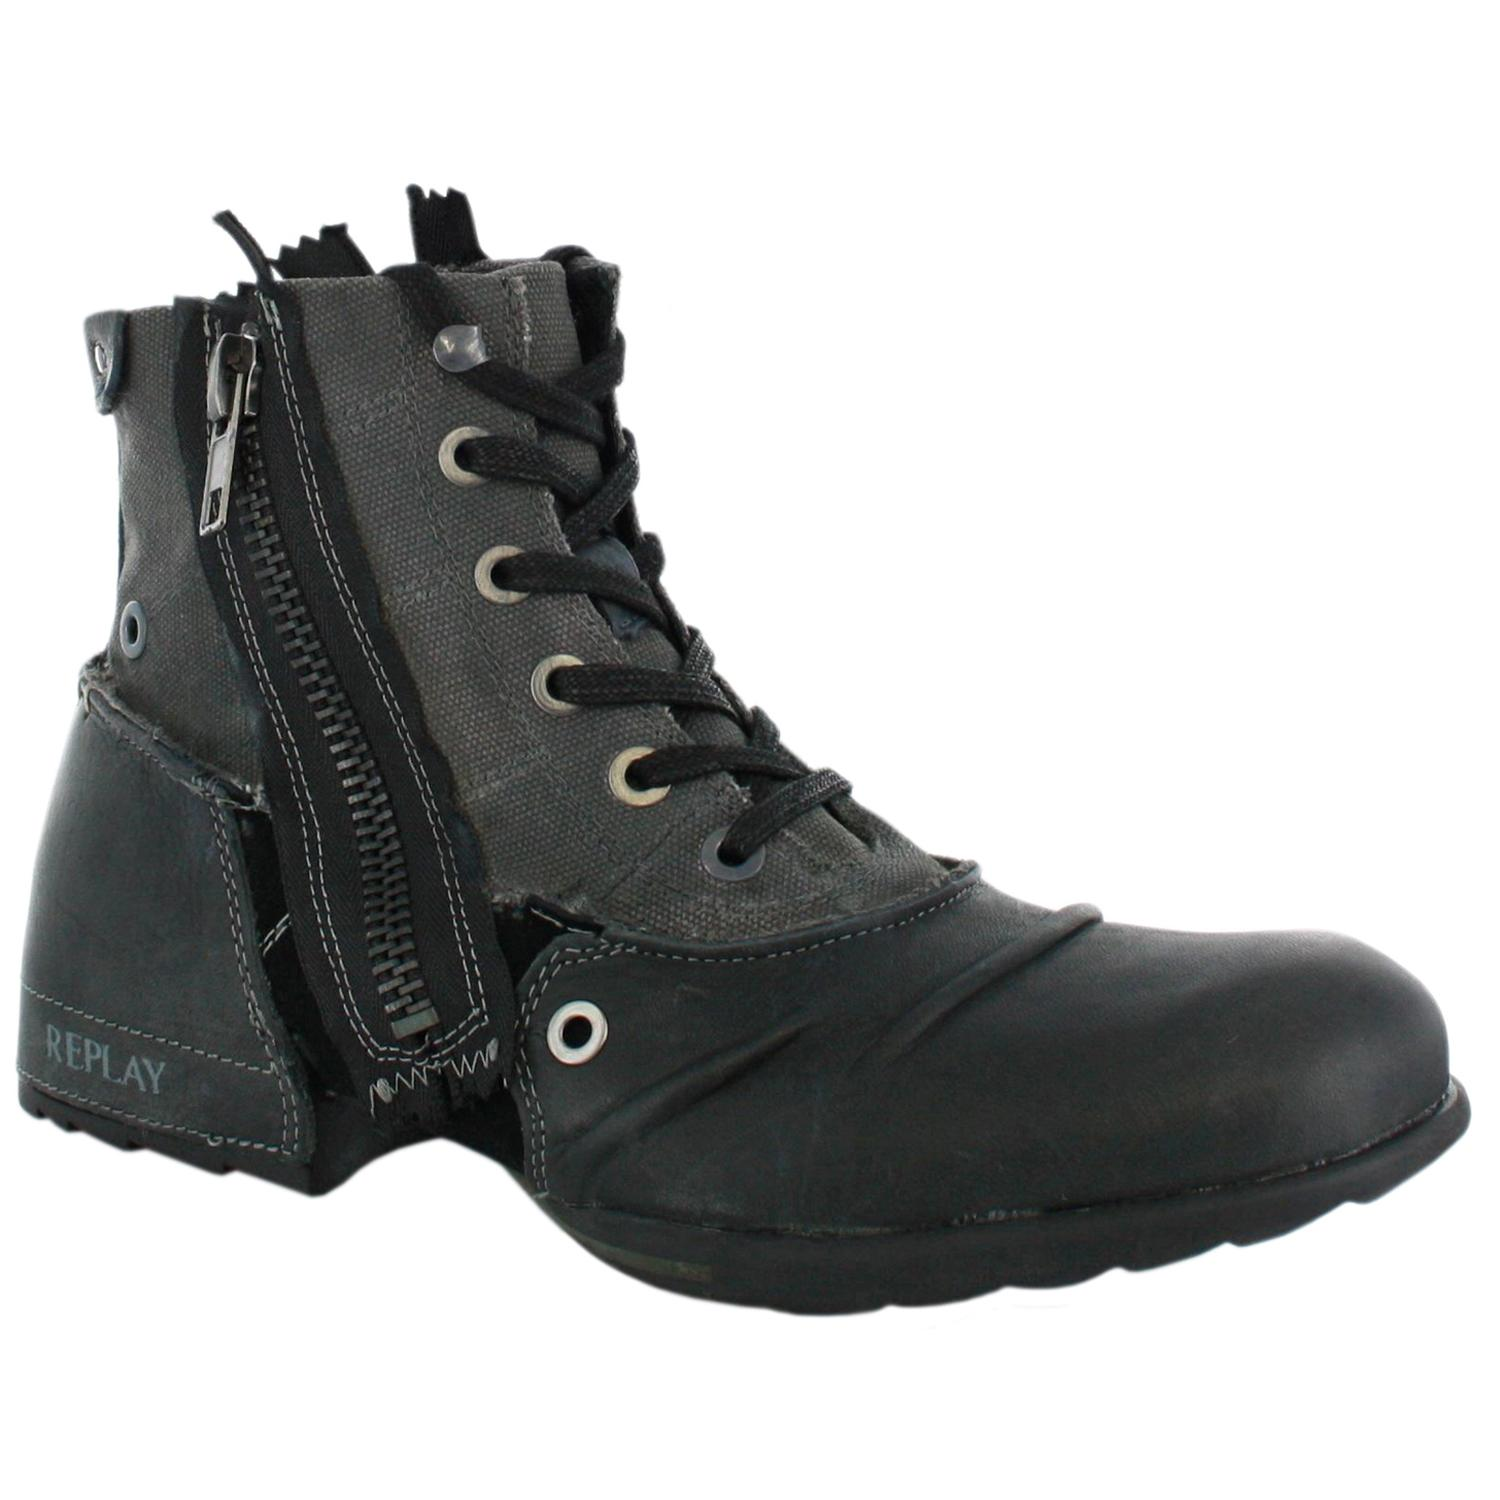 replay clutch black mens leather zip boots shoes ebay